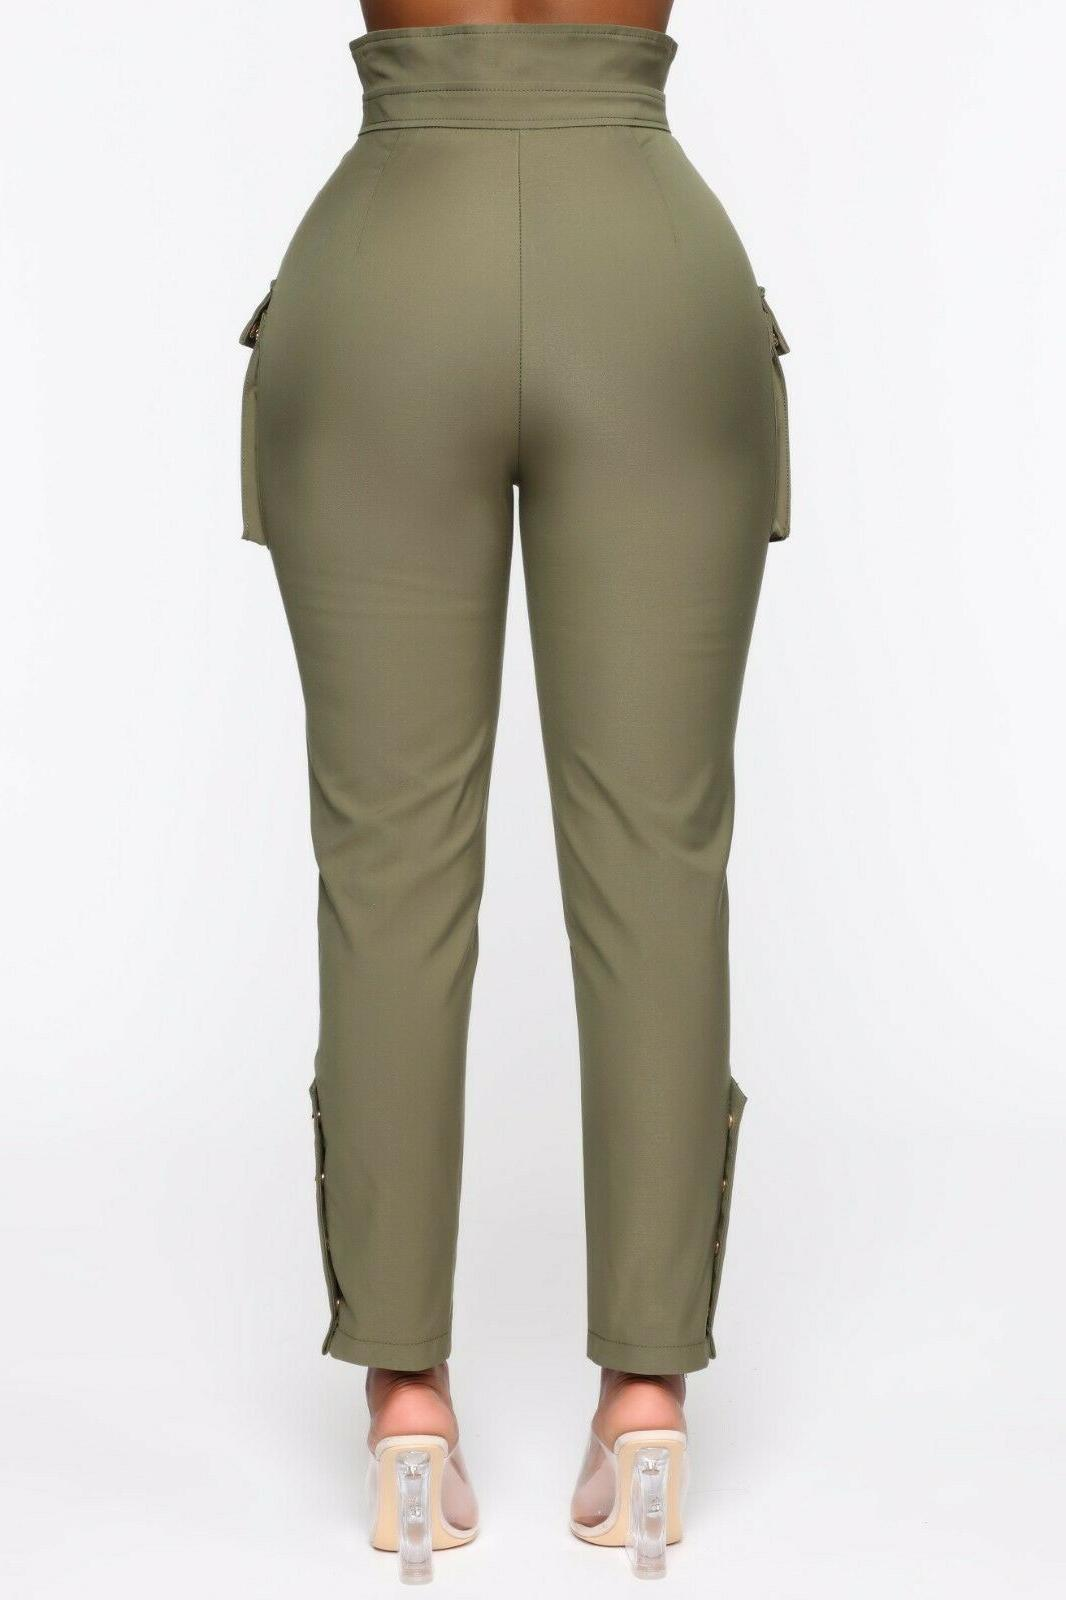 High Rise Casual Cargo Pants Olive Small S